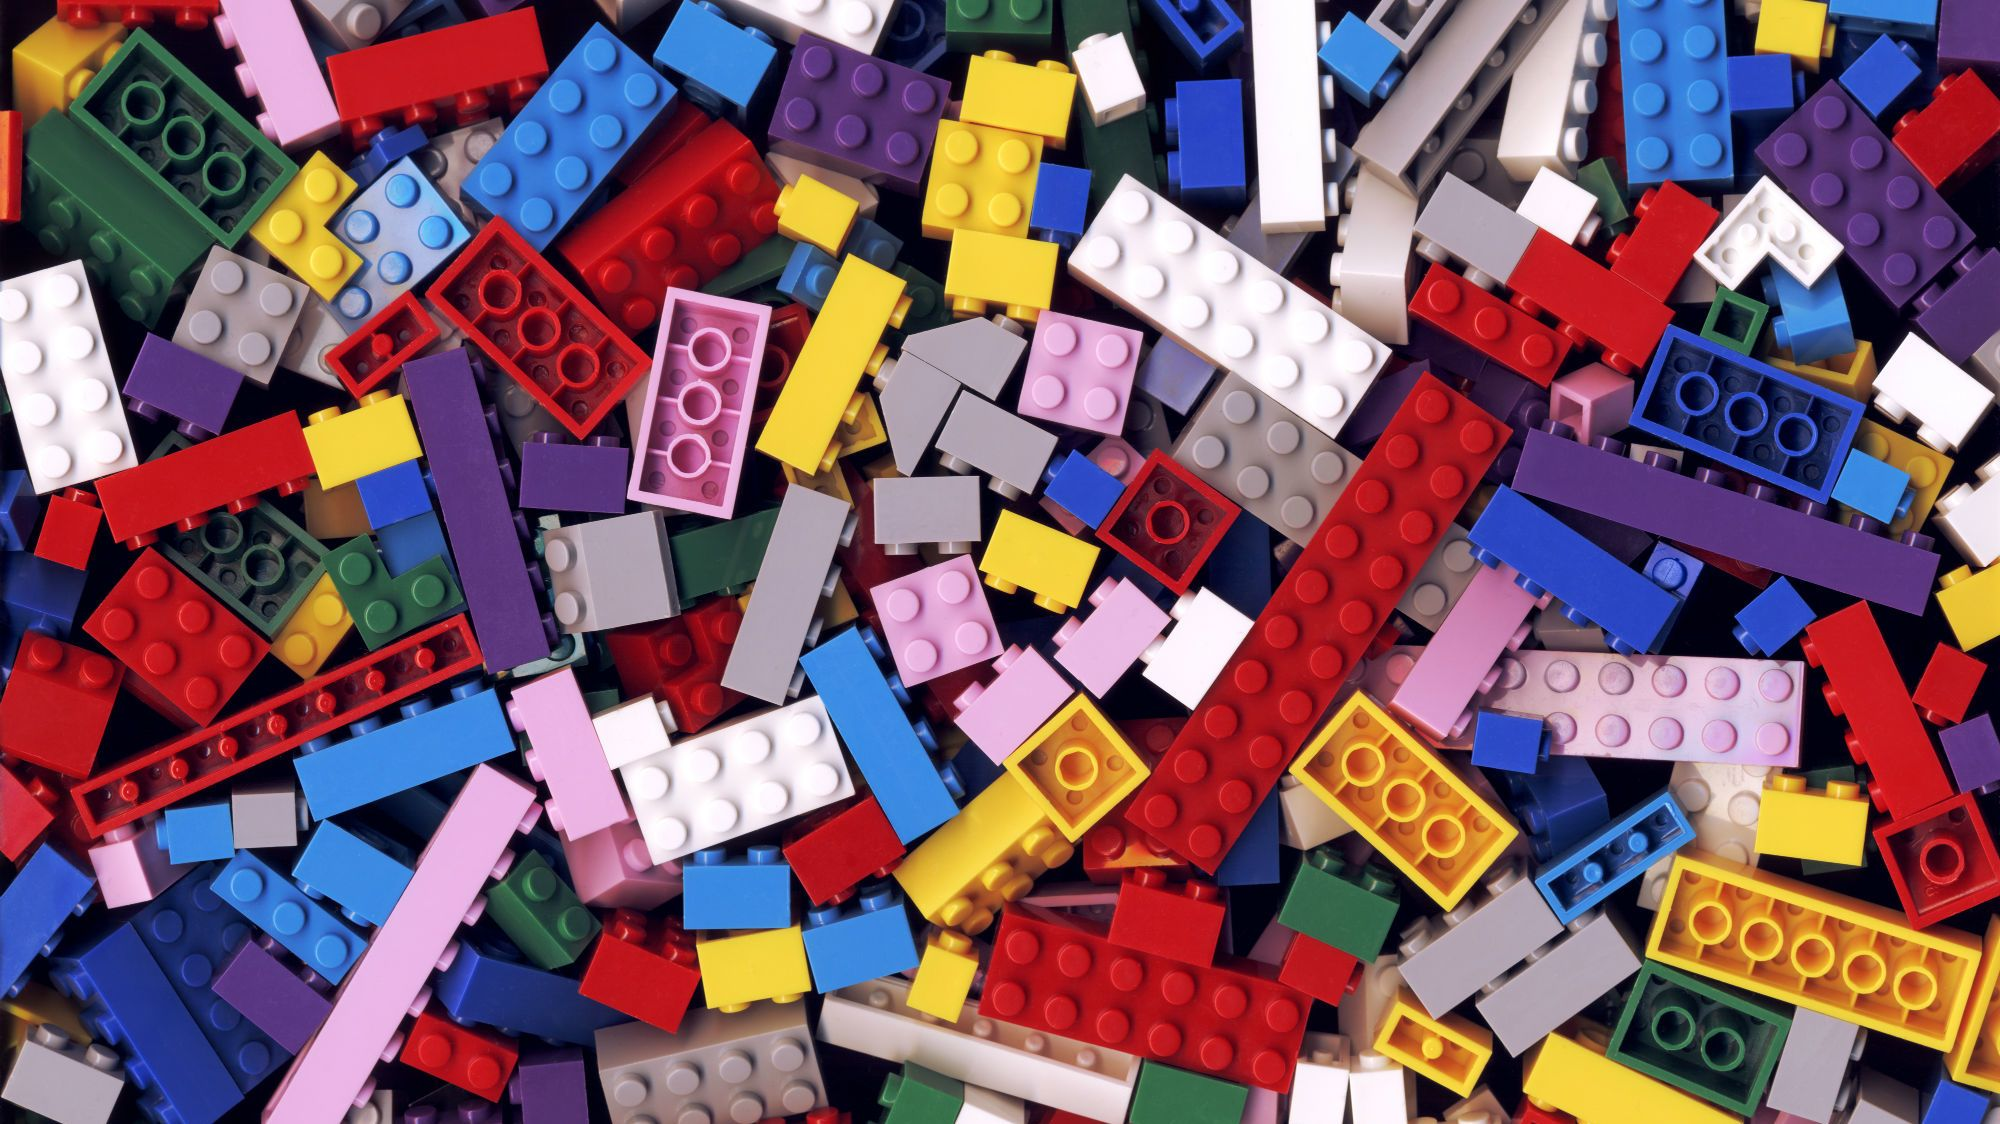 A LEGO Brick Could Survive In the Ocean for Up to 1300 Years